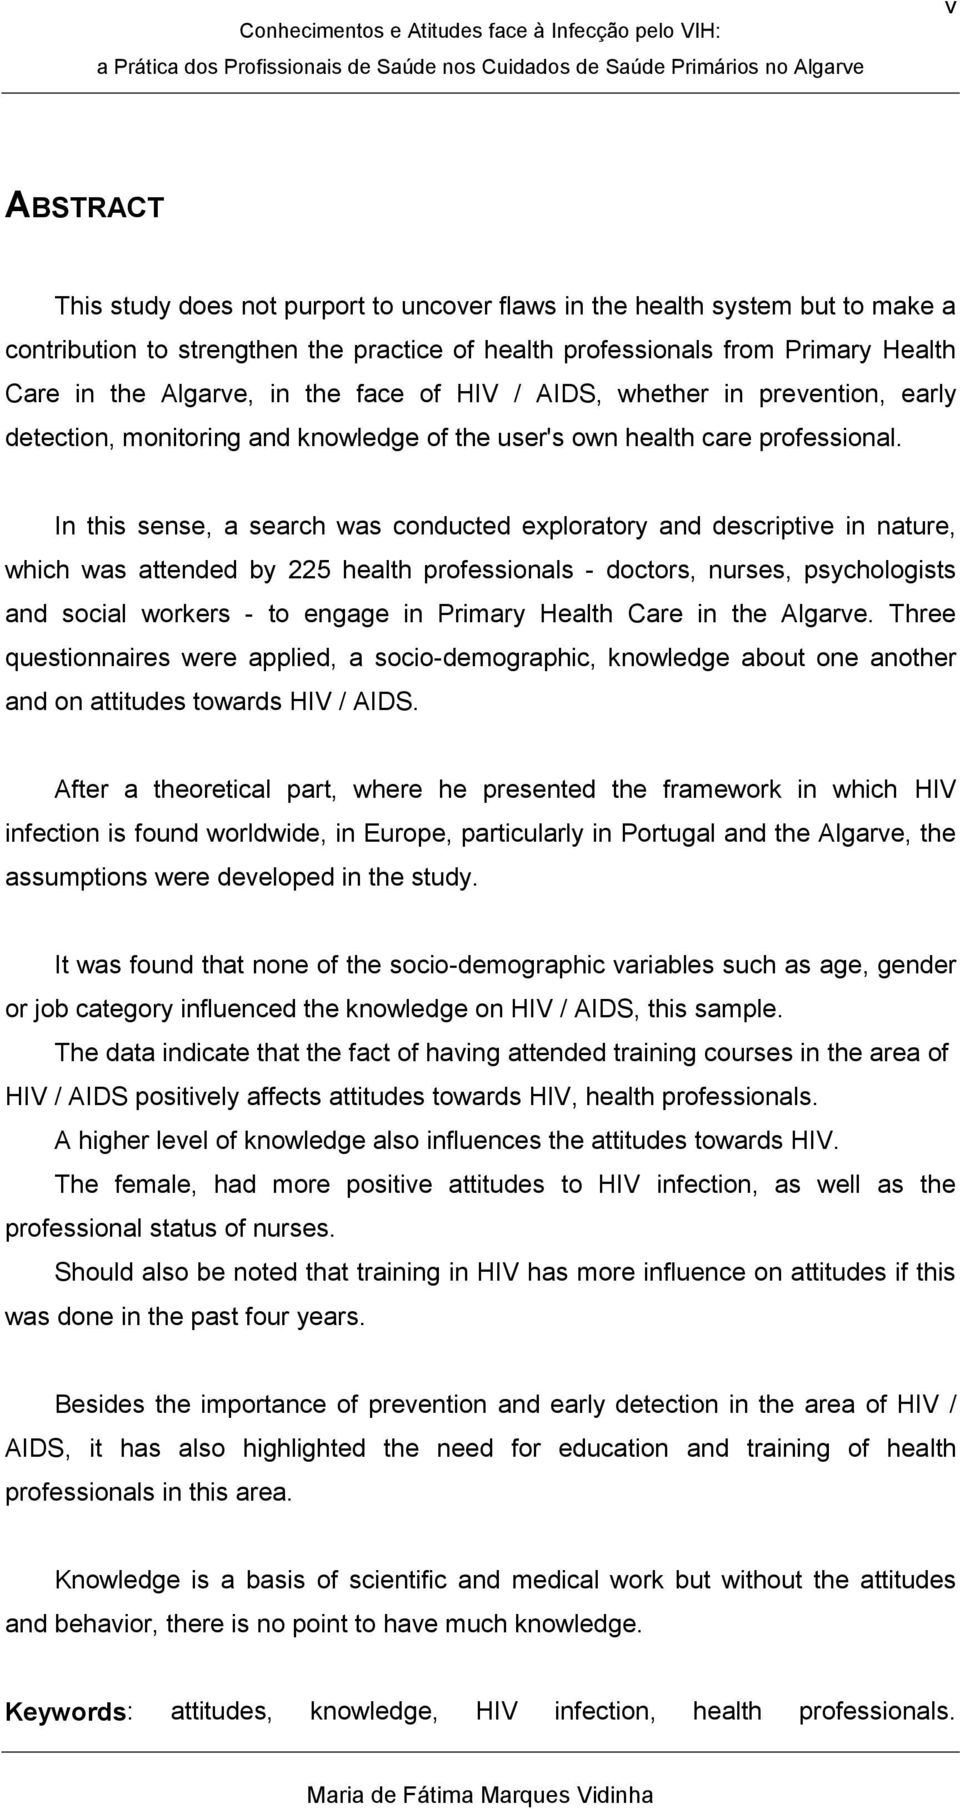 In this sense, a search was conducted exploratory and descriptive in nature, which was attended by 225 health professionals - doctors, nurses, psychologists and social workers - to engage in Primary